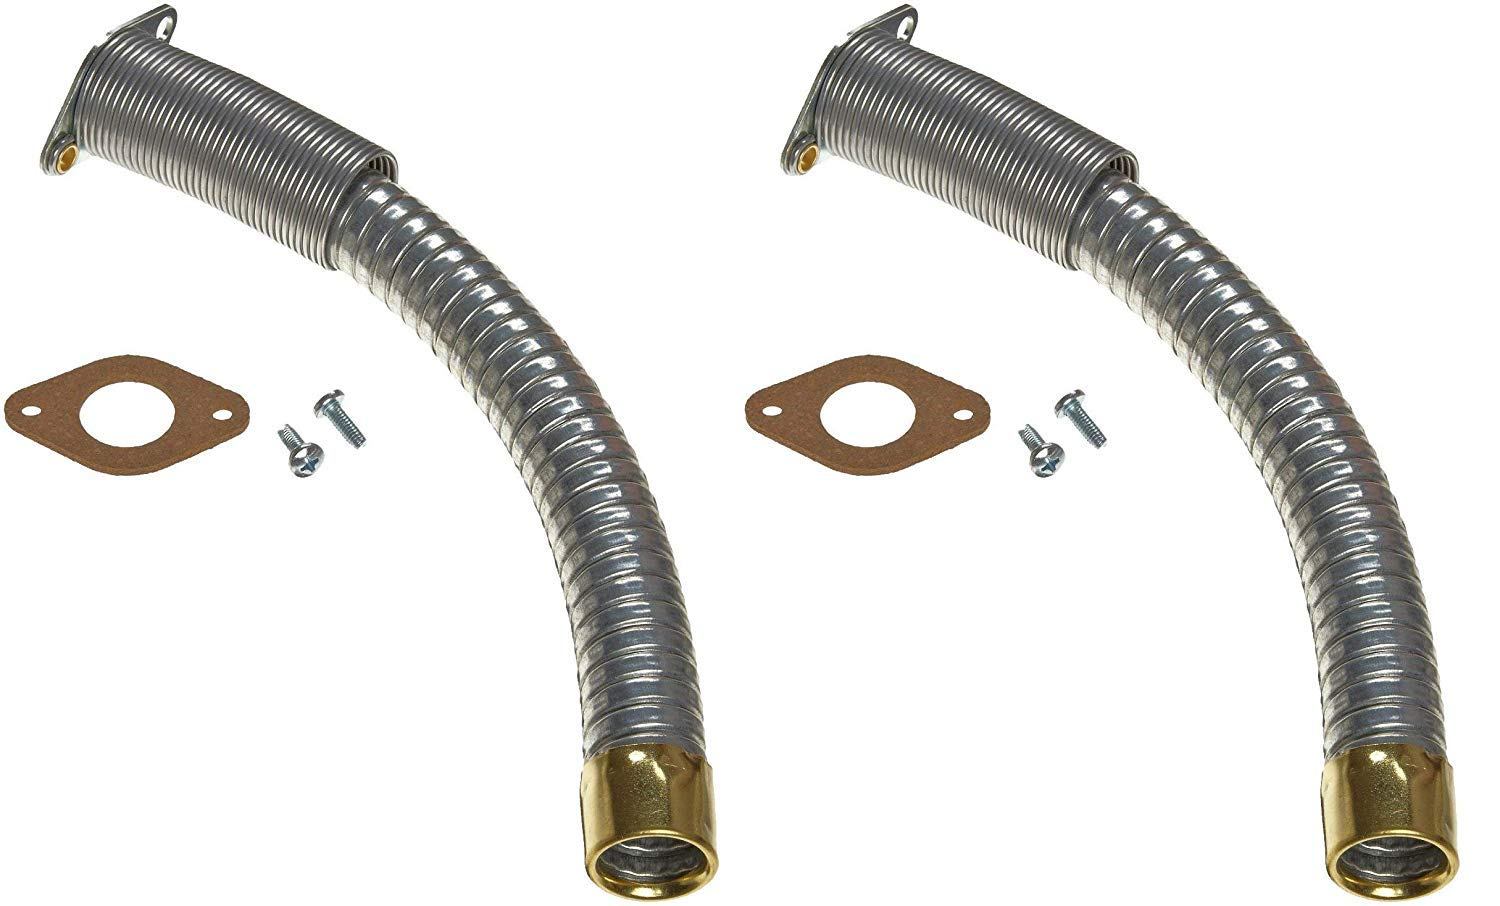 Justrite 11078 5/8'' Diameter x 9'' Long Flex Hoses for Type II Safety Can (Pack of 2)